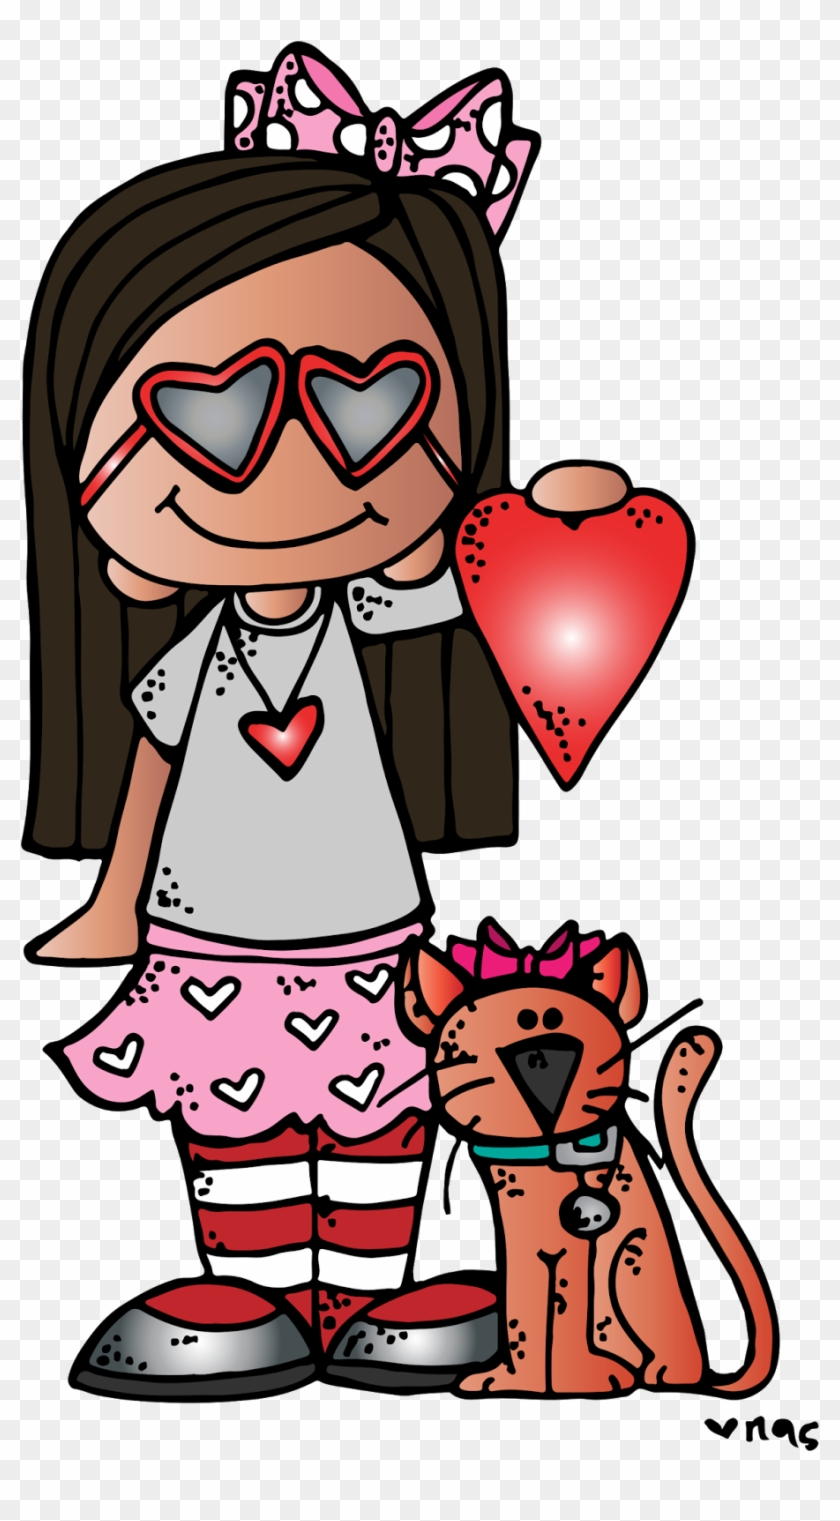 Valentines day clipart.